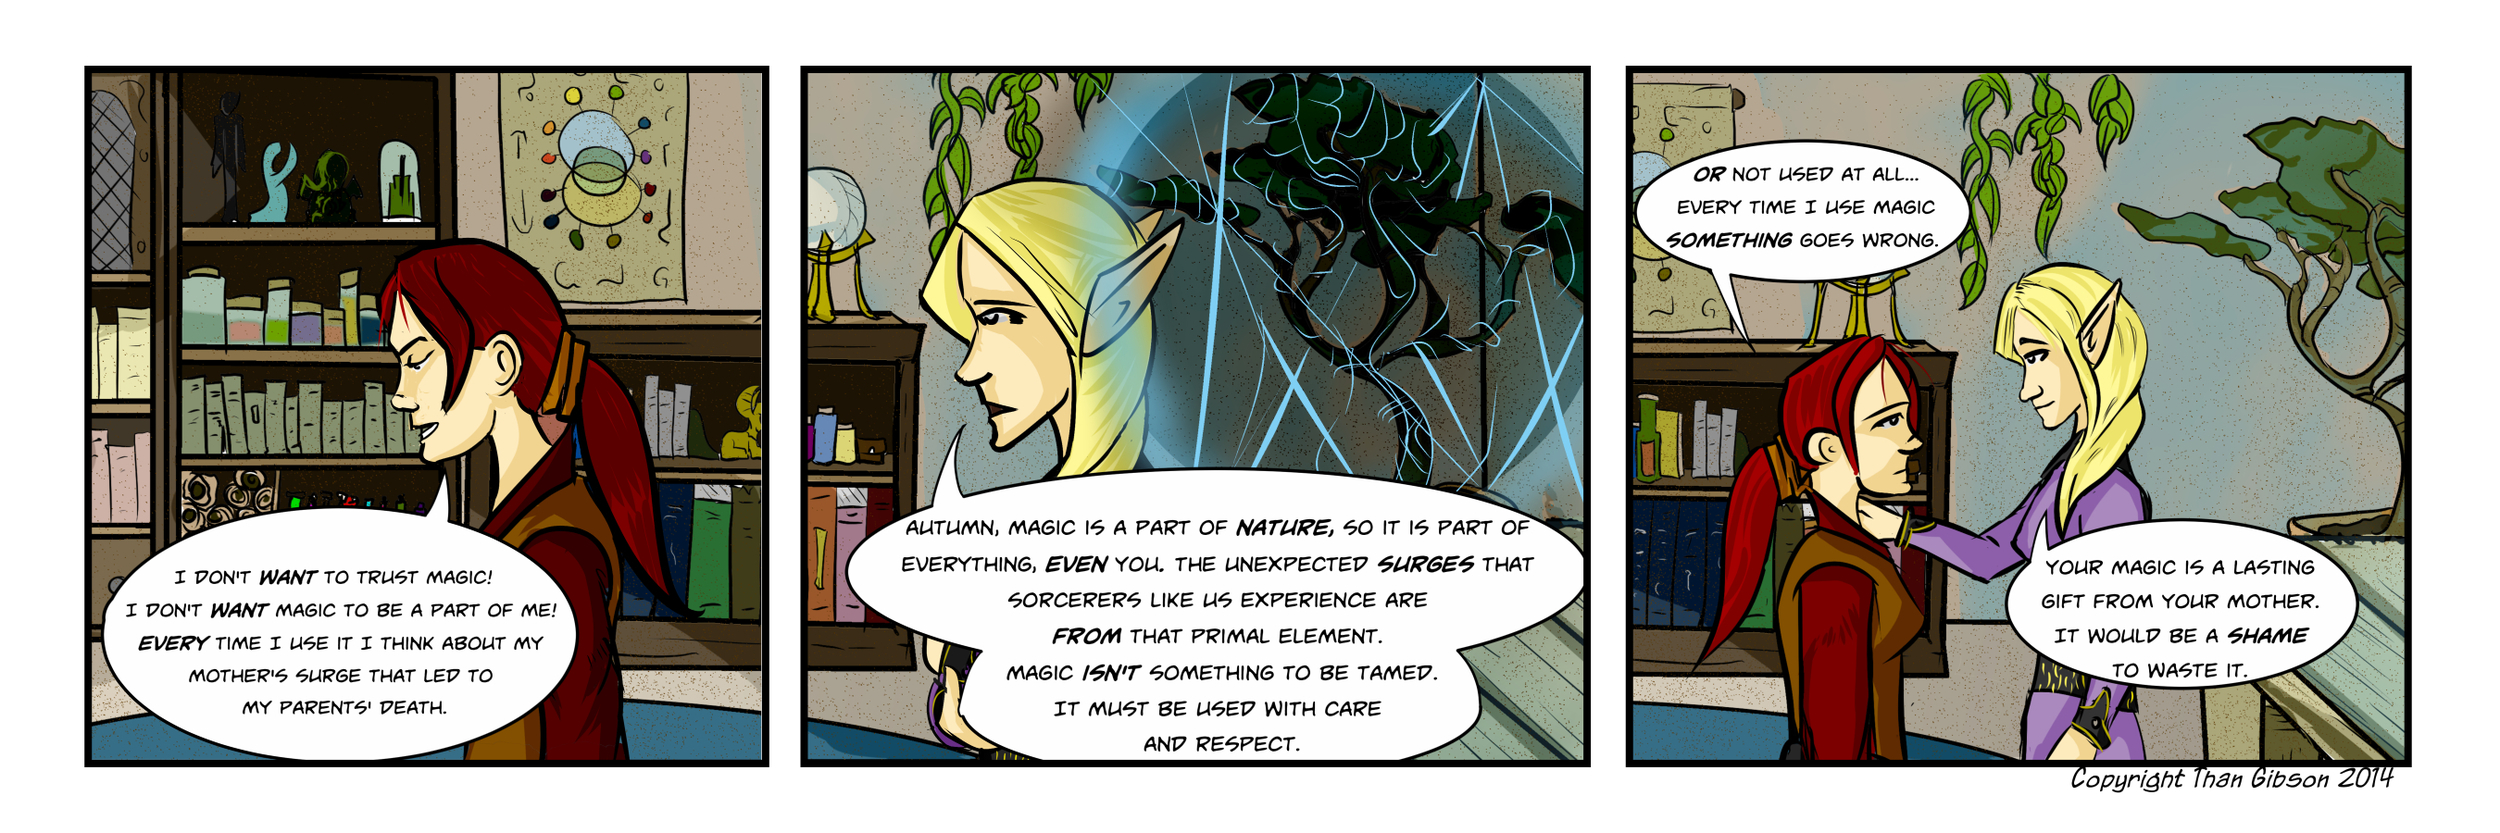 Strip 10 -Click the image for a larger view!